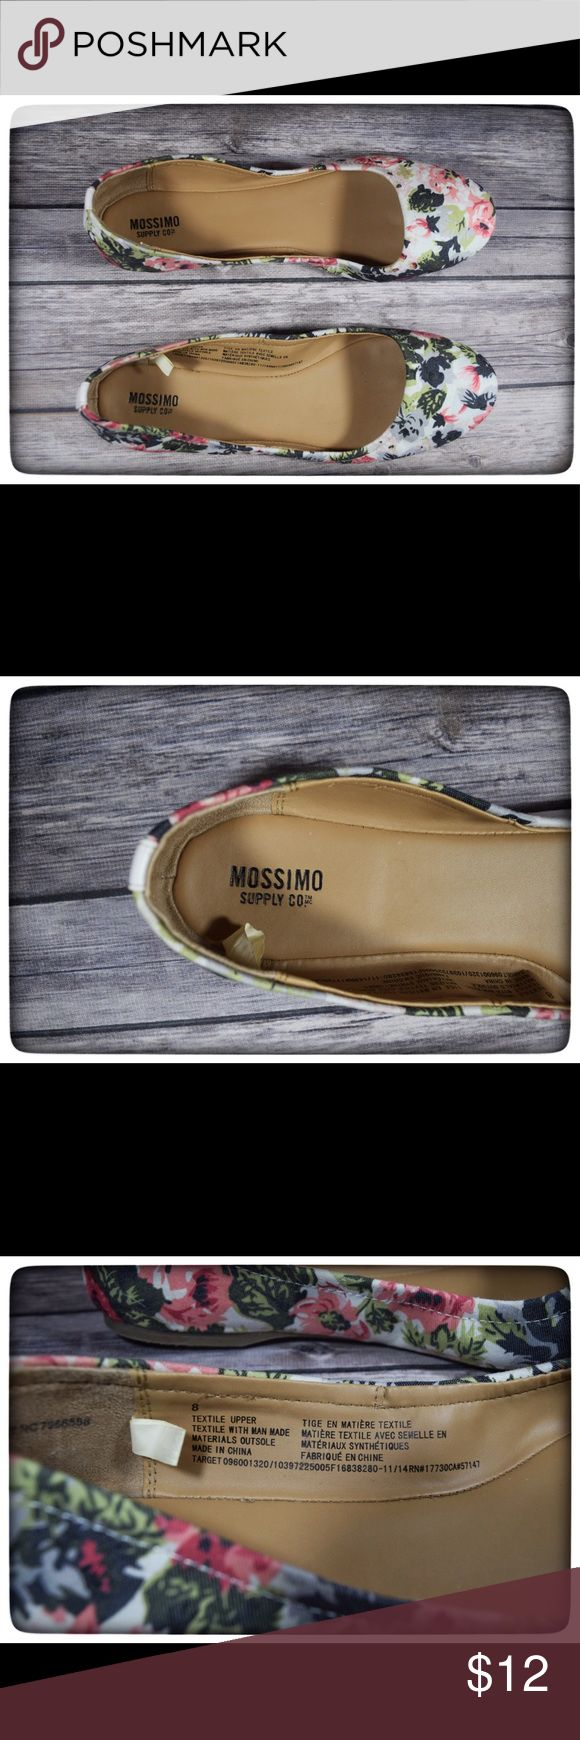 {Mossimo} Floral Ballet Flats {Mossimo} Floral Ballet Flats  Size: 8  Worn only once! Excellent condition! Narrow fit  Textile with man made materials Mossimo Supply Co Shoes Flats & Loafers